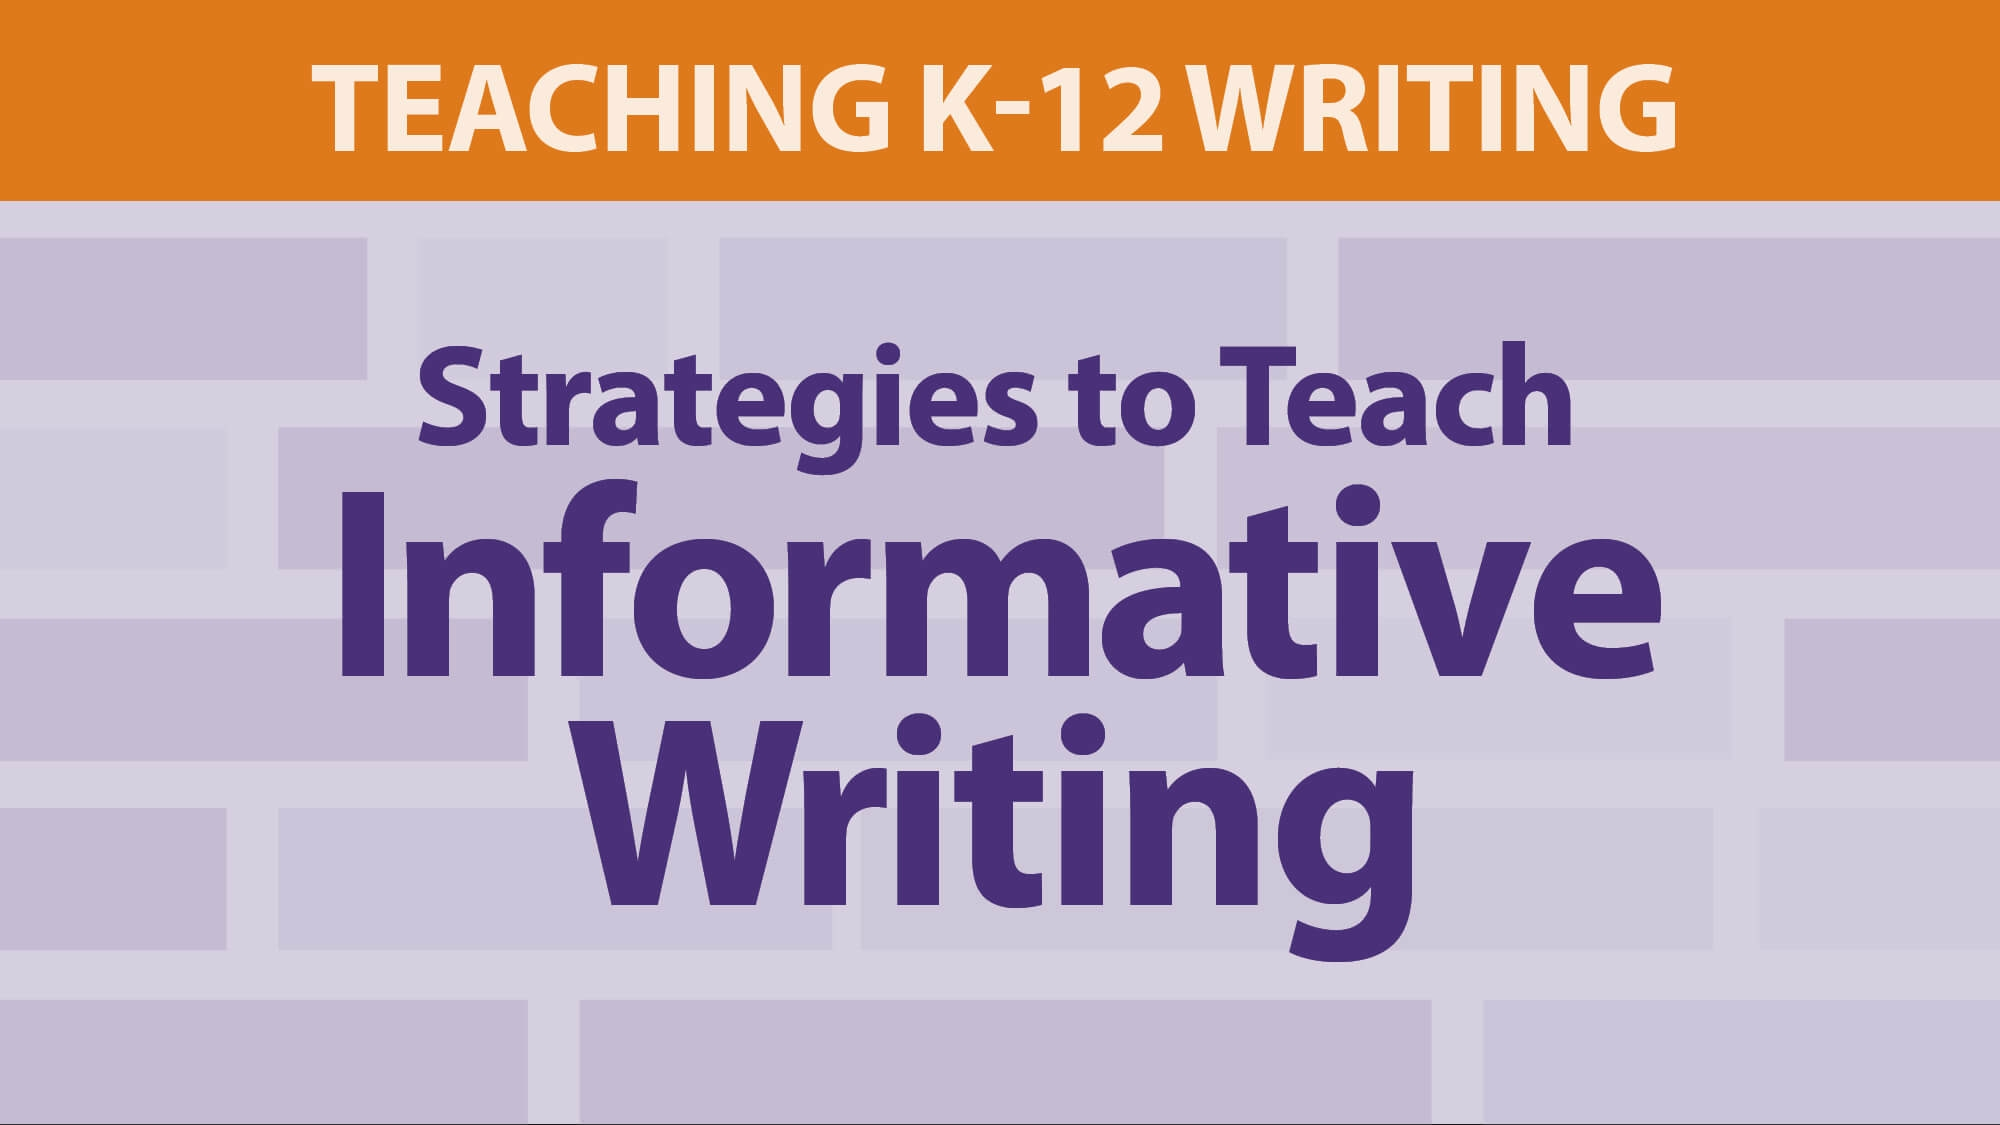 Strategies to Teach Informative Writing Online Course with webAcademy by Smekens Education